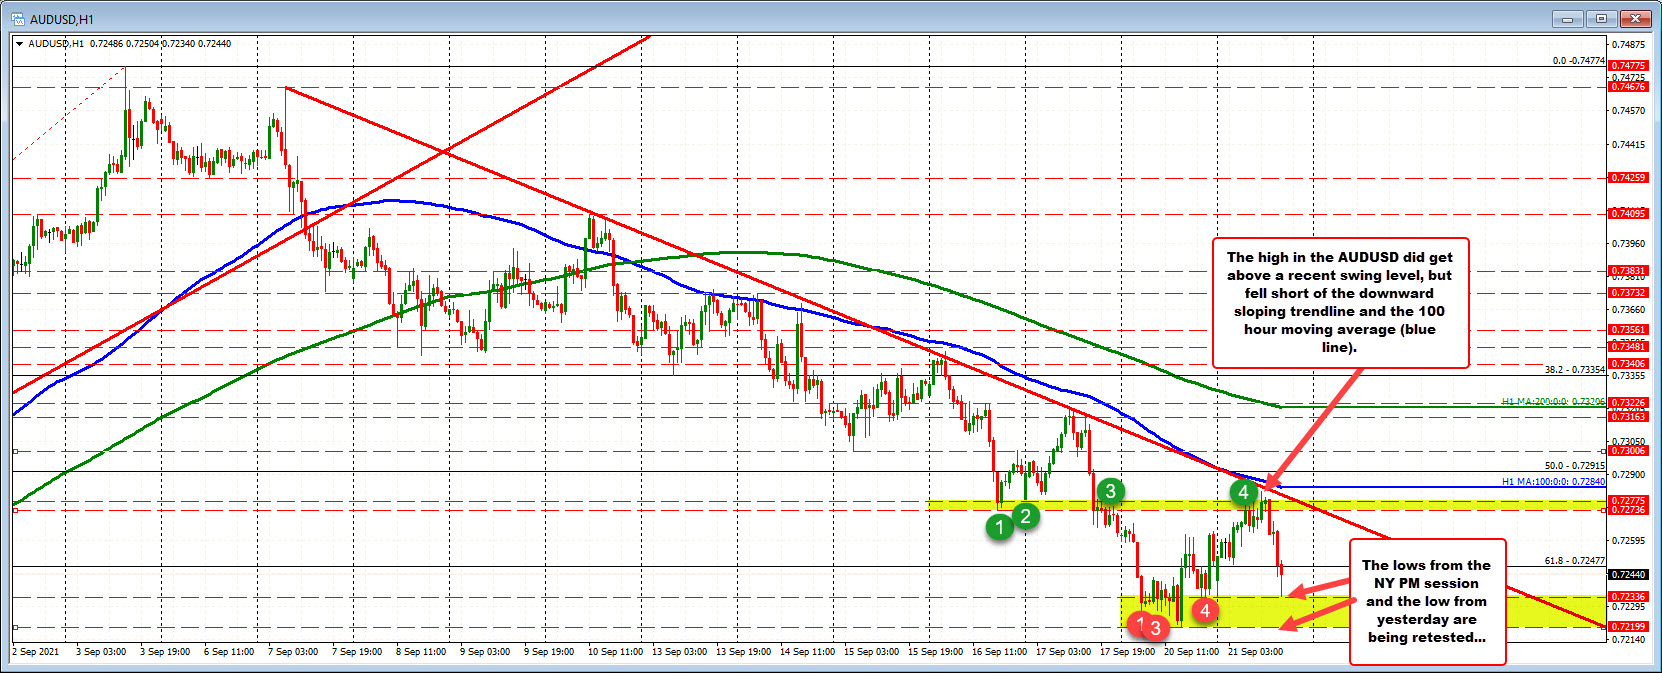 AUDUSD retraces earlier gains, but find some support buying.